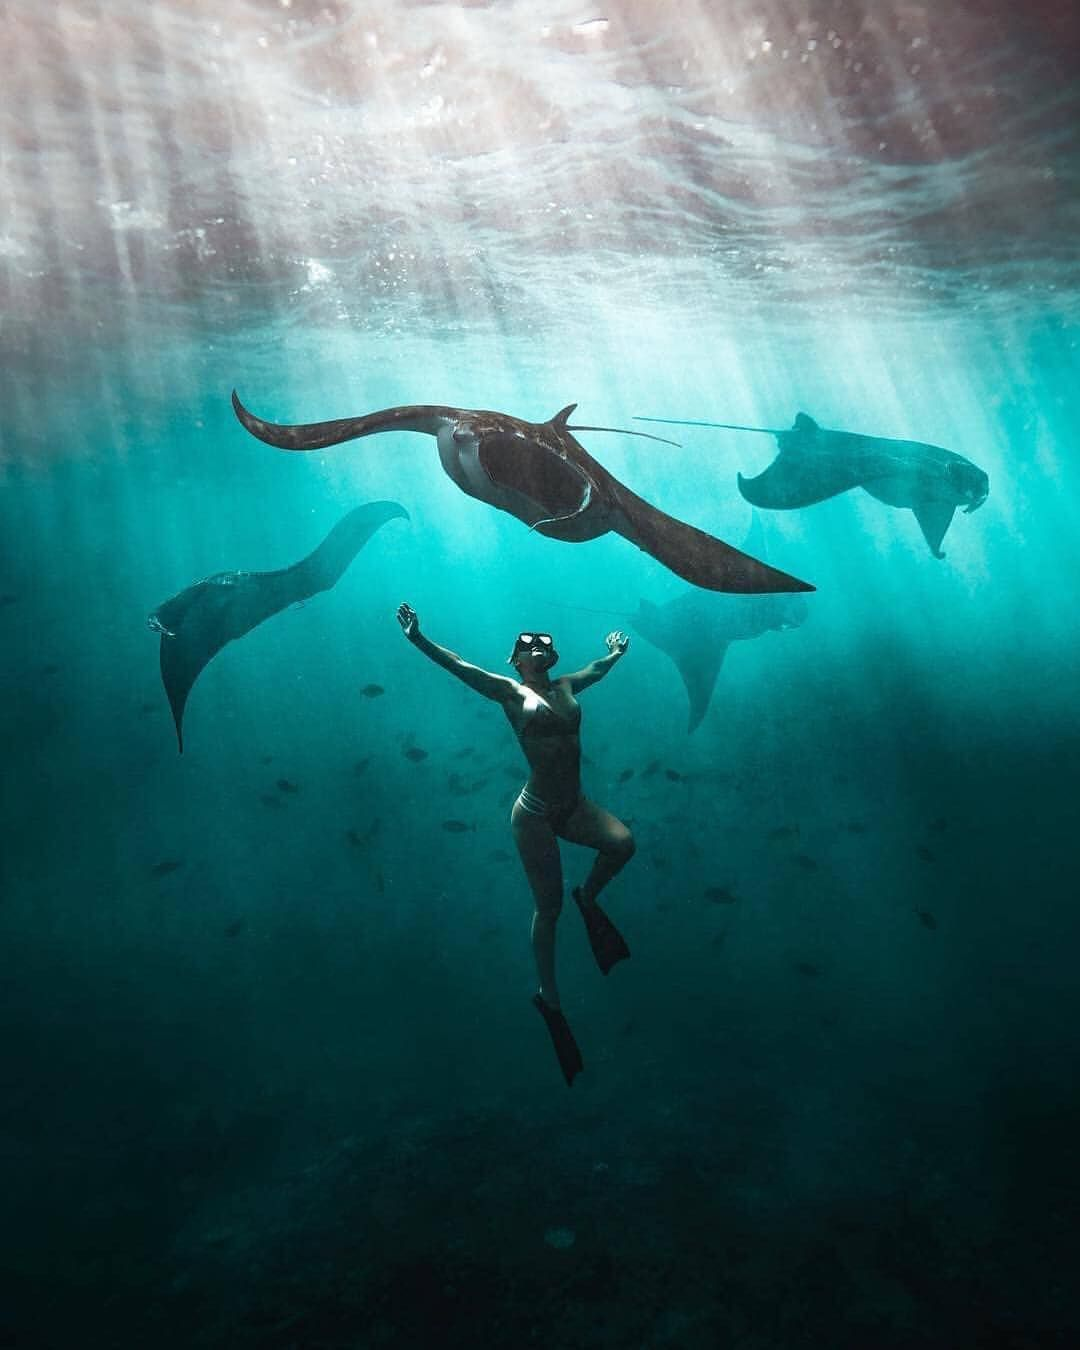 Literally The Best Experience Of My Life What An Incredible Feeling To Swim With These Gentle Giants Brandon With Images Manta Ray Kite Surfing Underwater Photography